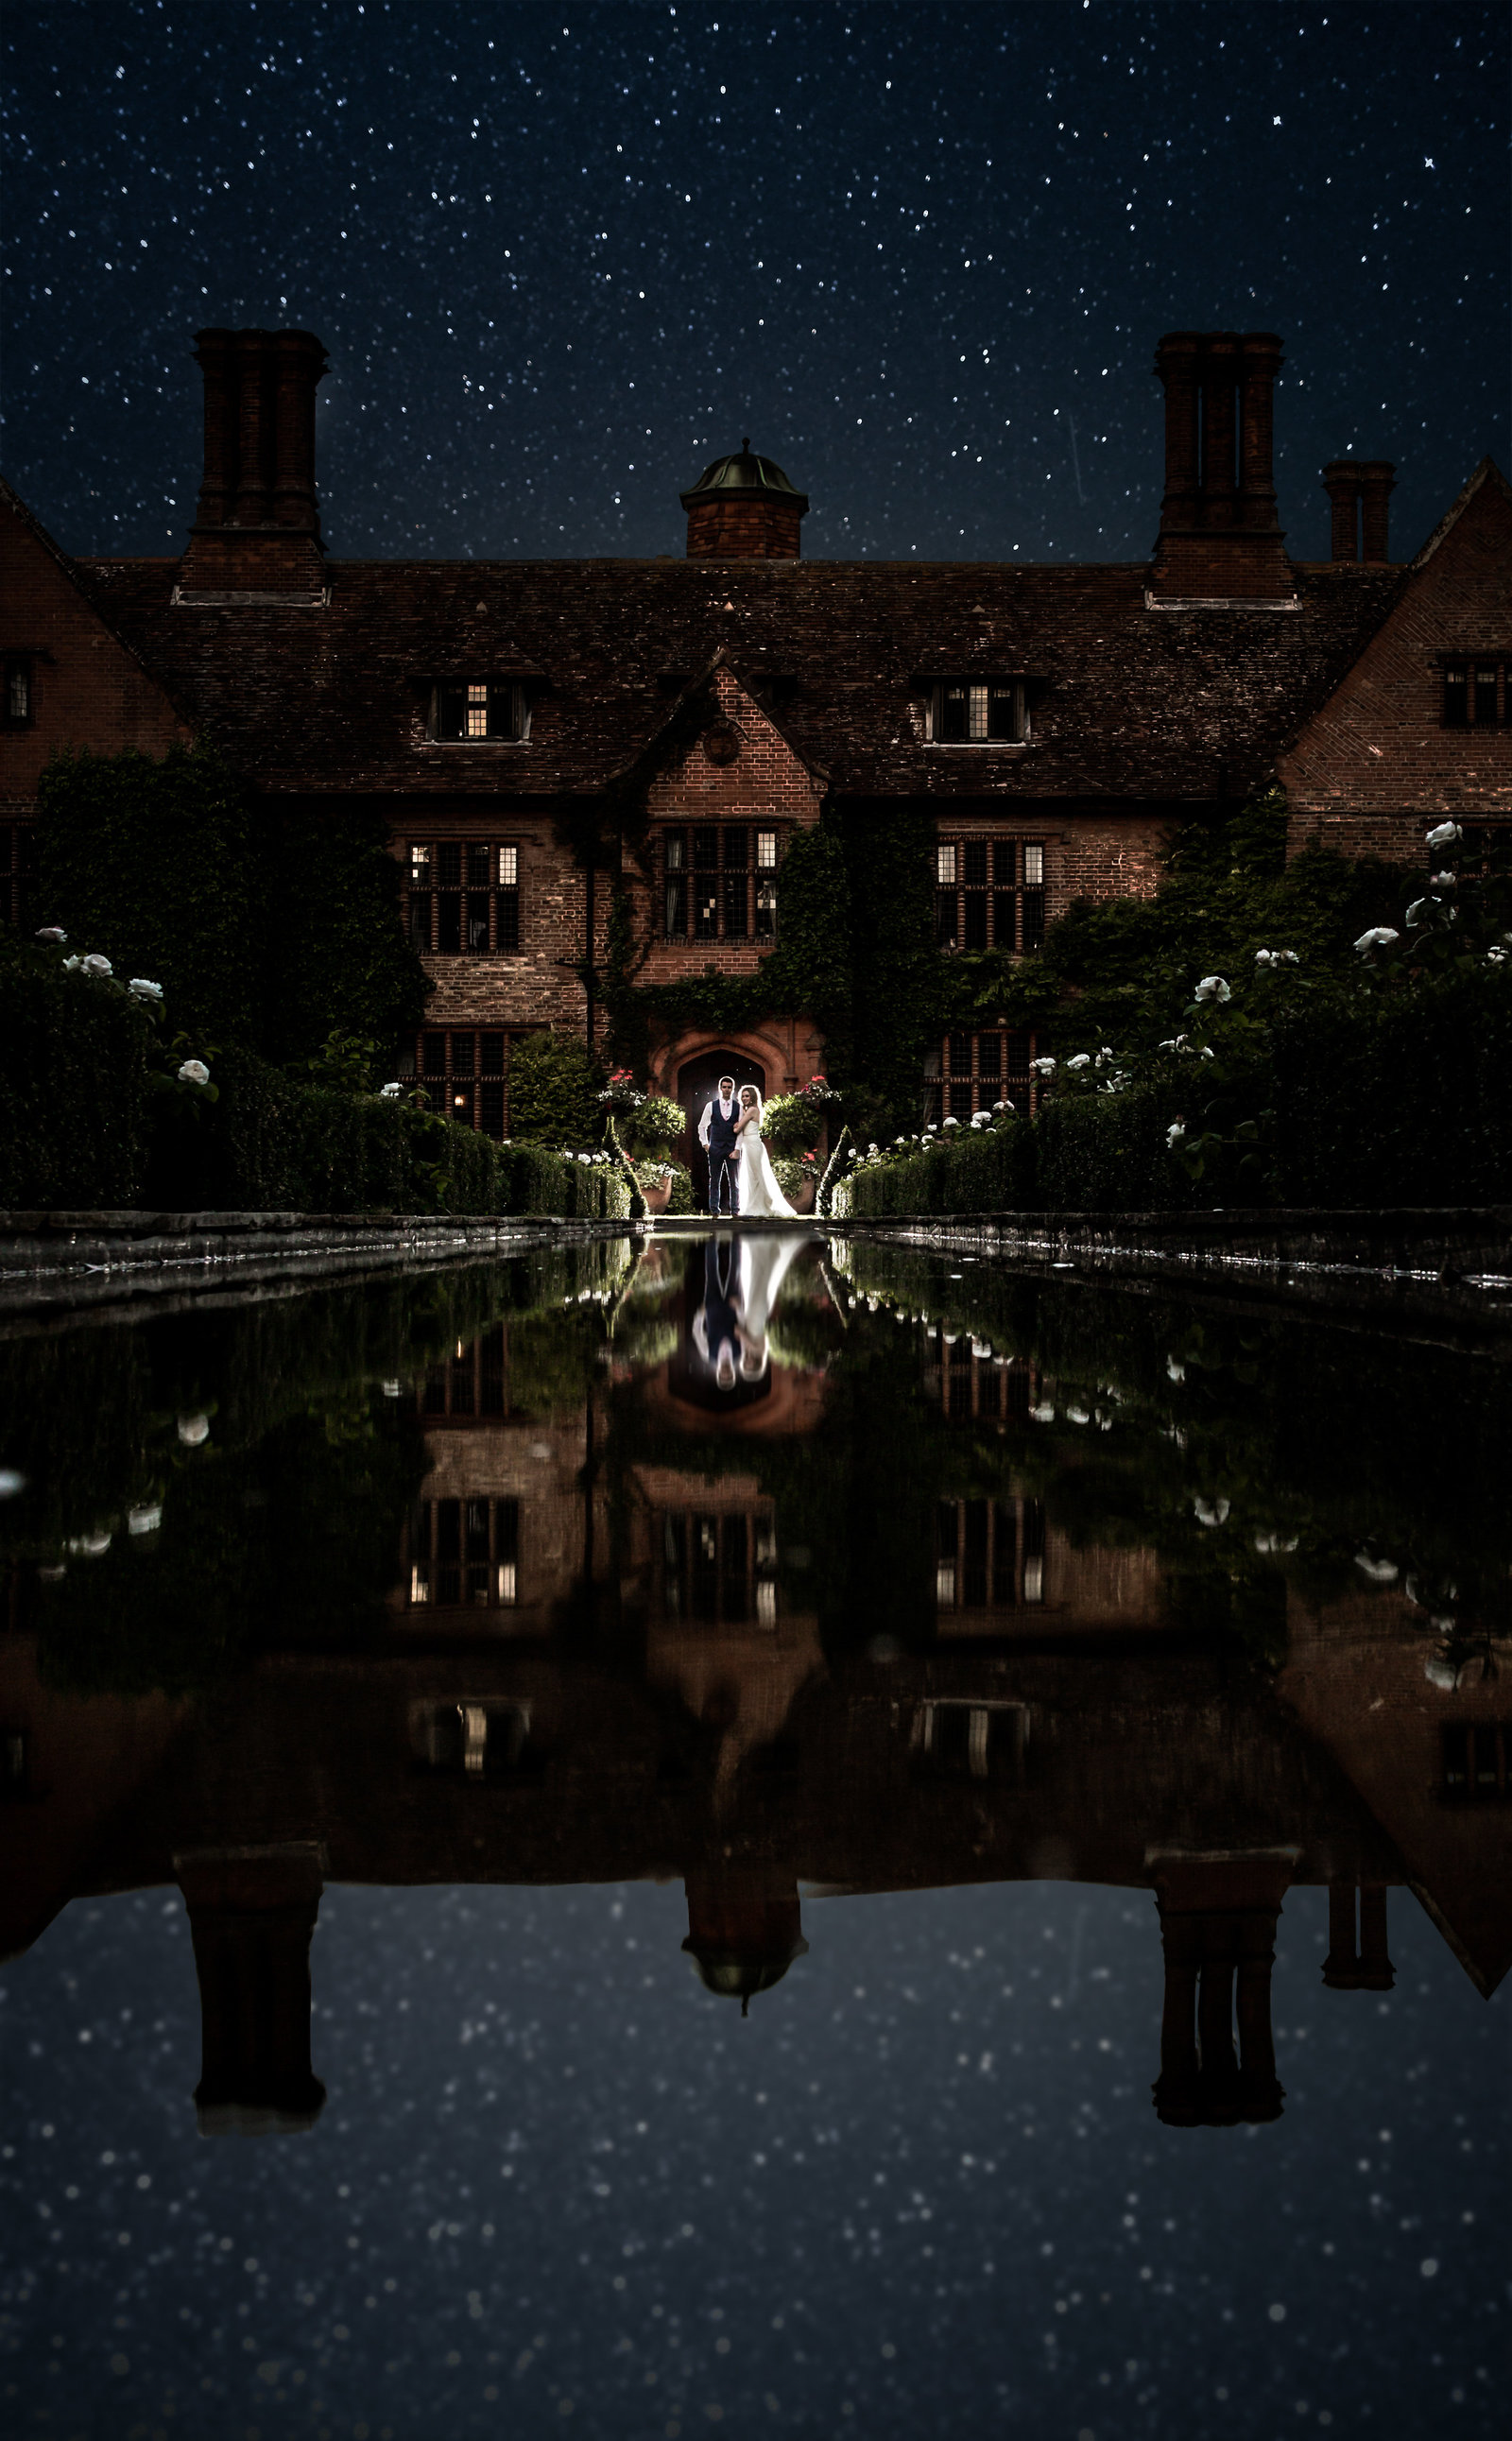 A bride and Groom stand and smile at each other in front of a manor wedding venue with a water way in front of them. Stars are in the sky and reflected in the water.